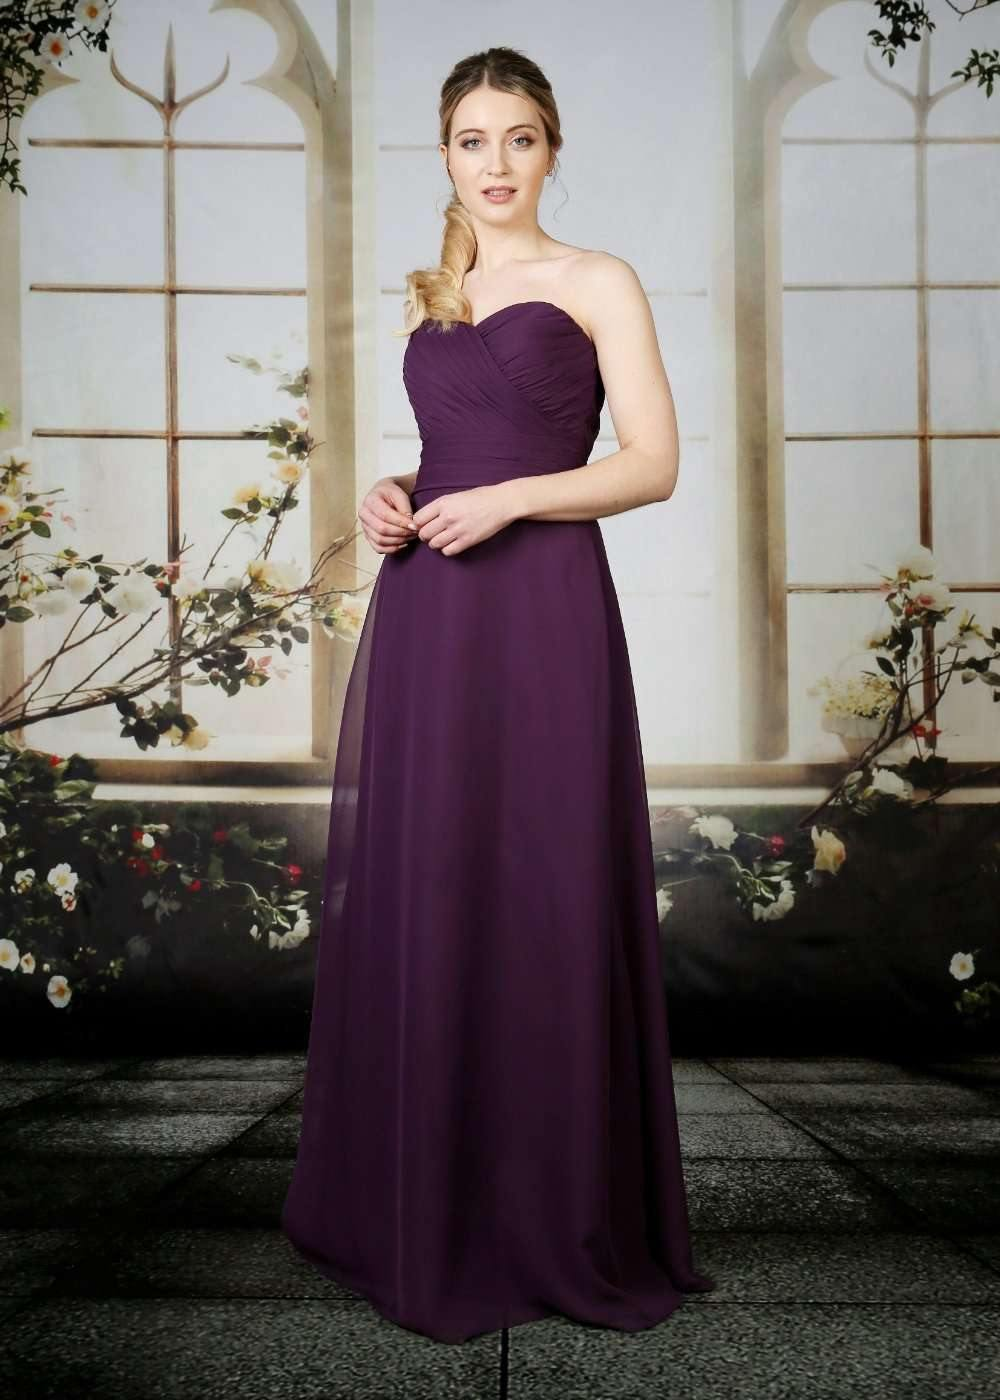 FLEUR Nieve Occasion - Adore Bridal and Occasion Wear